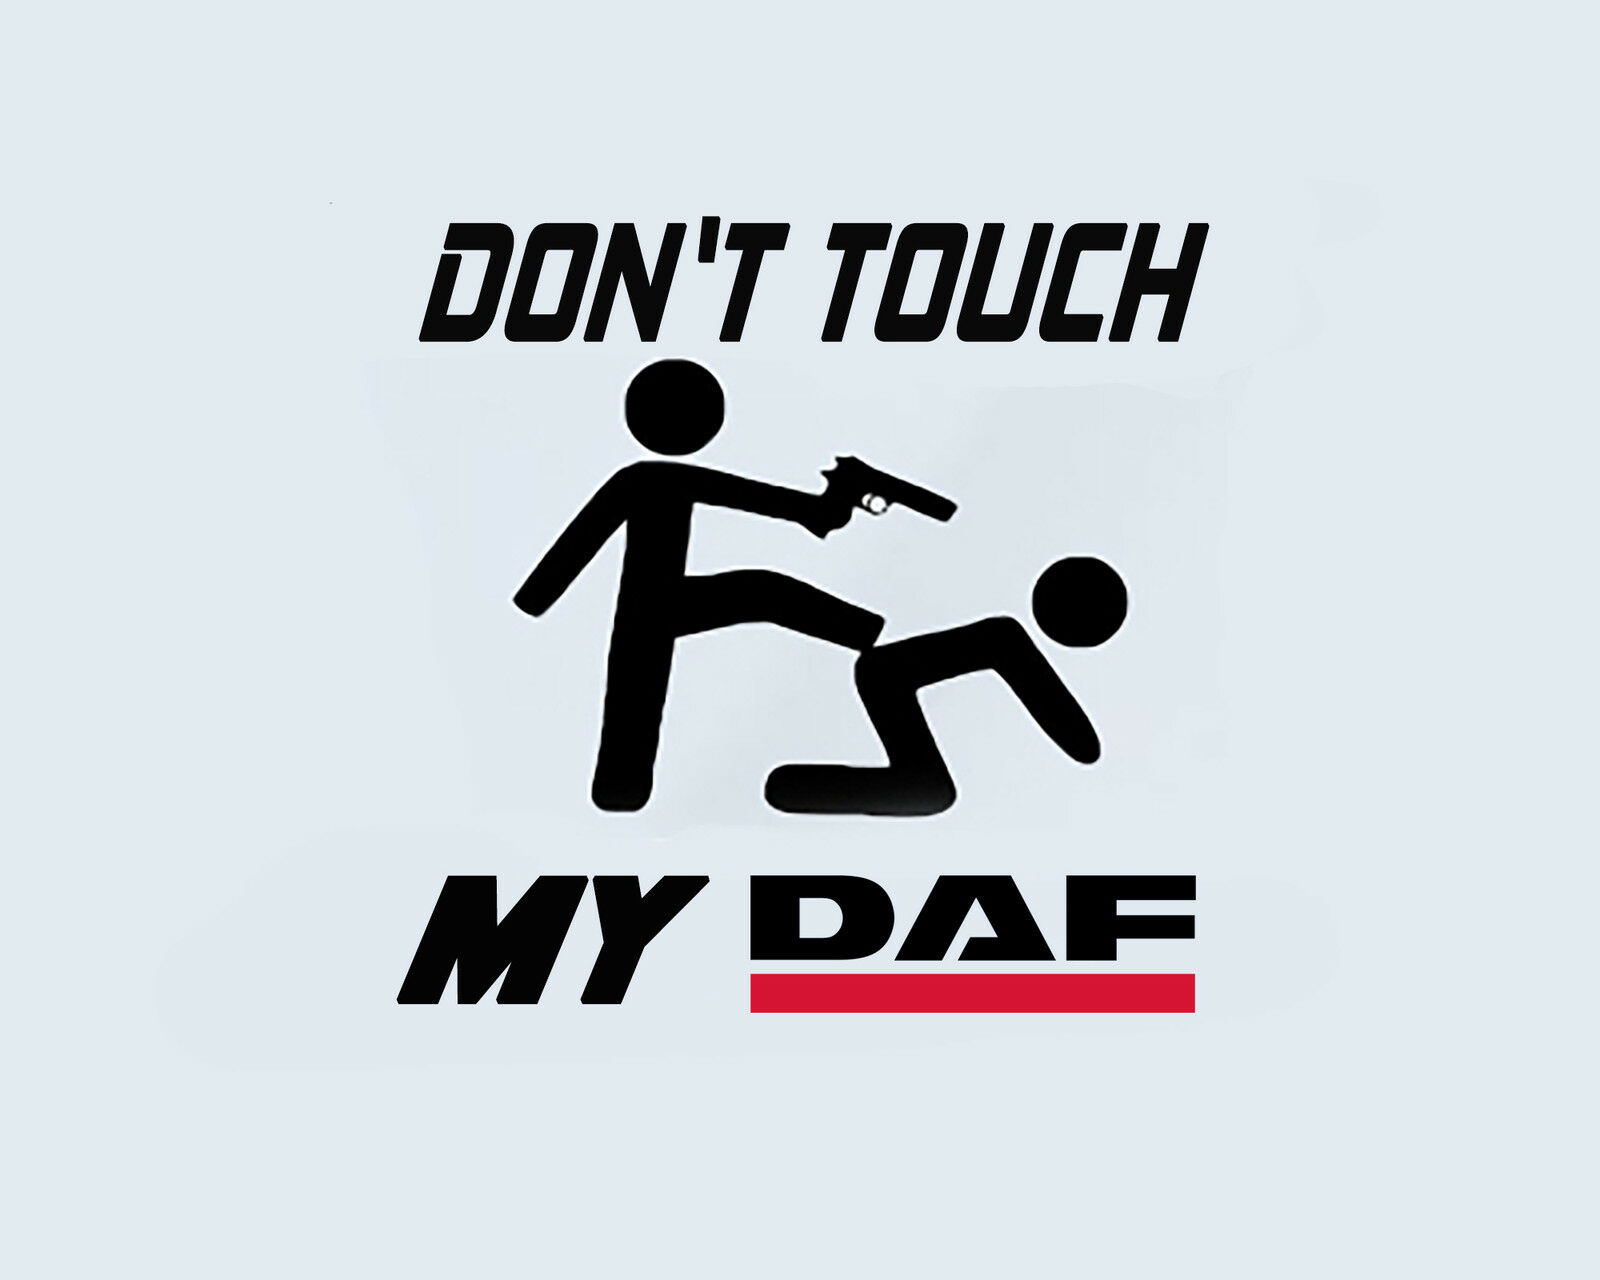 Don T Touch My Daf Truck Lkw Bus Kipper Aufkleber Sticker